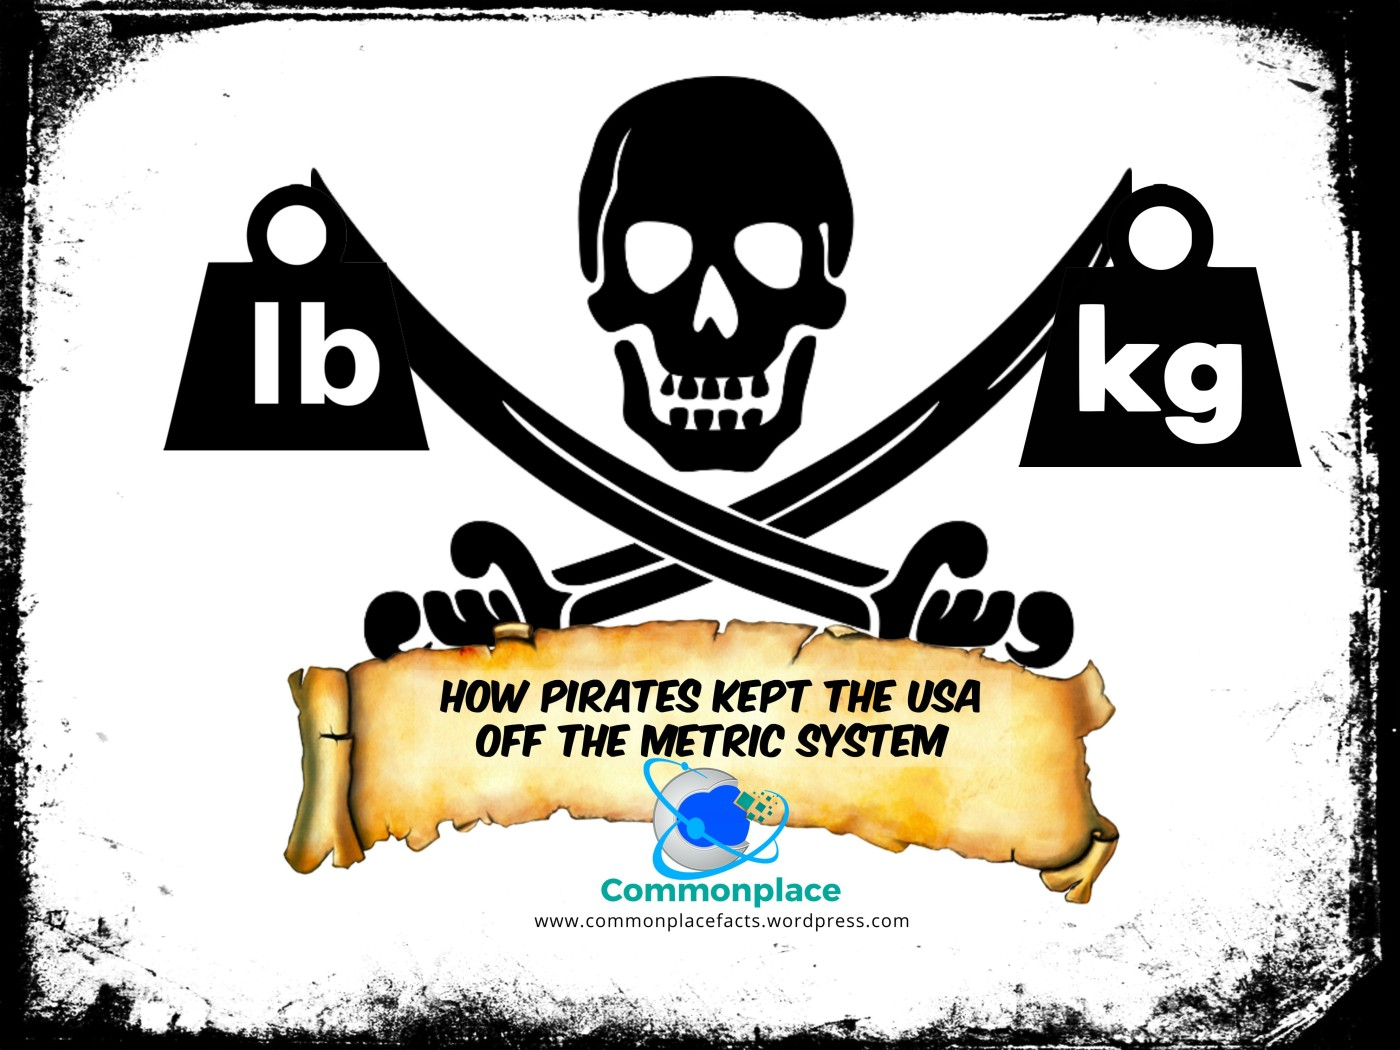 #pirates #metricsystem #funfacts